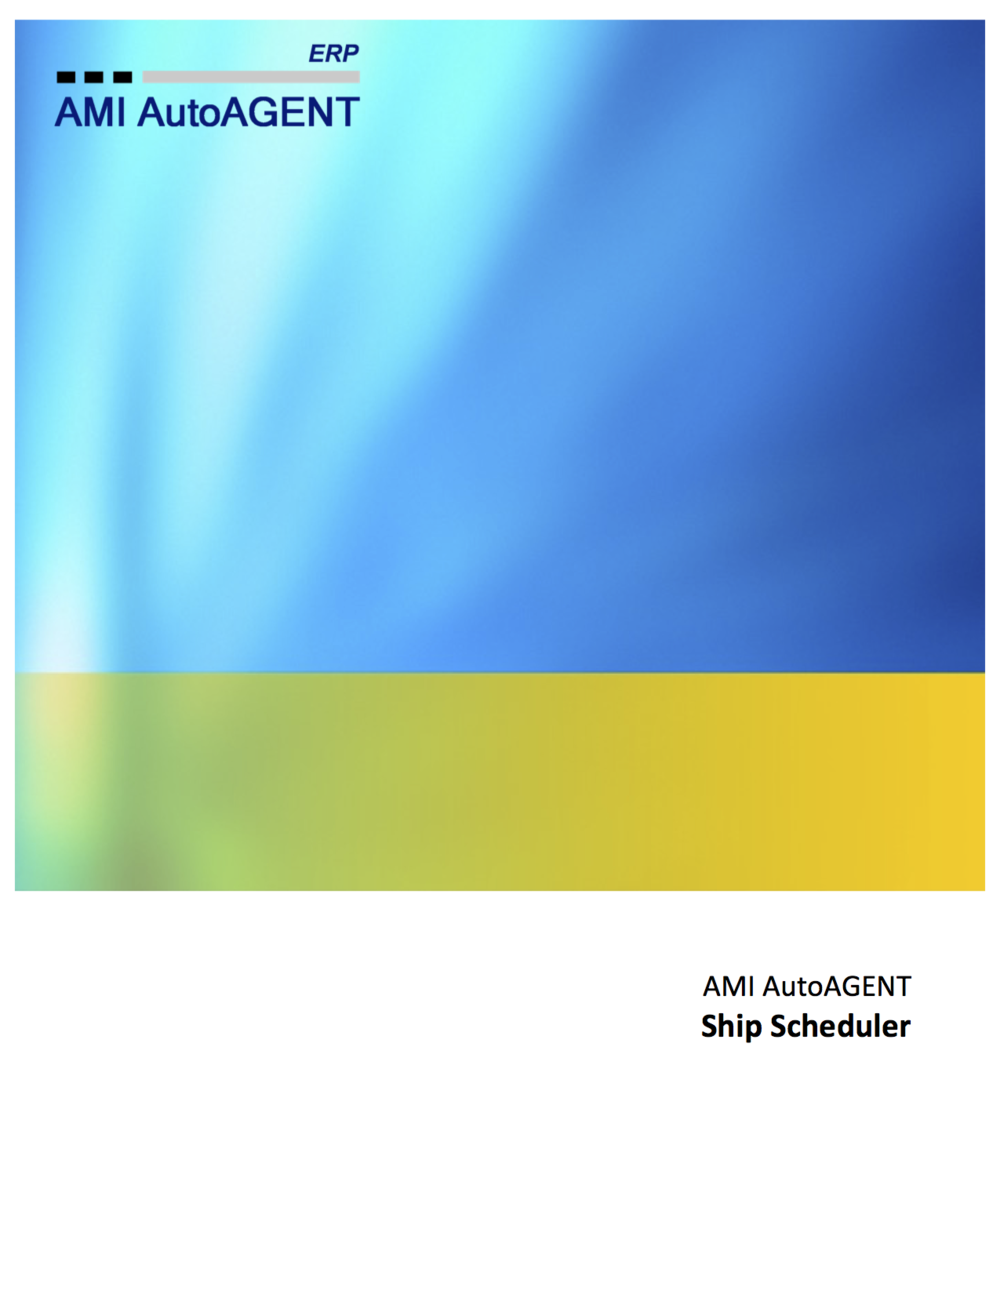 Ship Scheduler